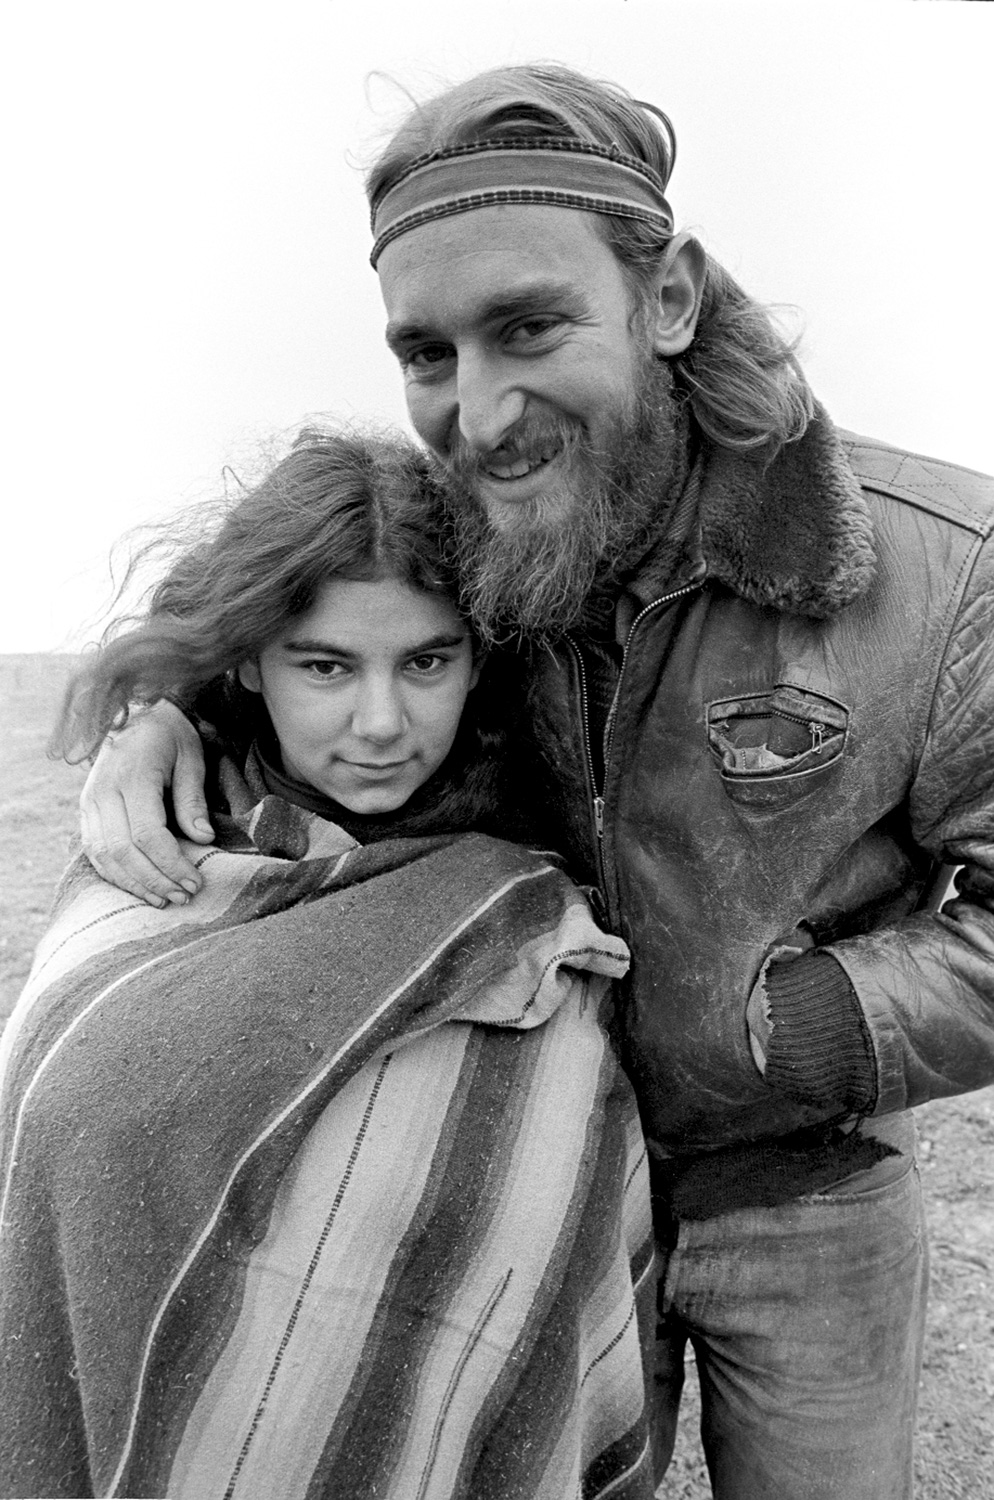 Two members of the Sunburst House commune, Santa Cruz, 1968-69.